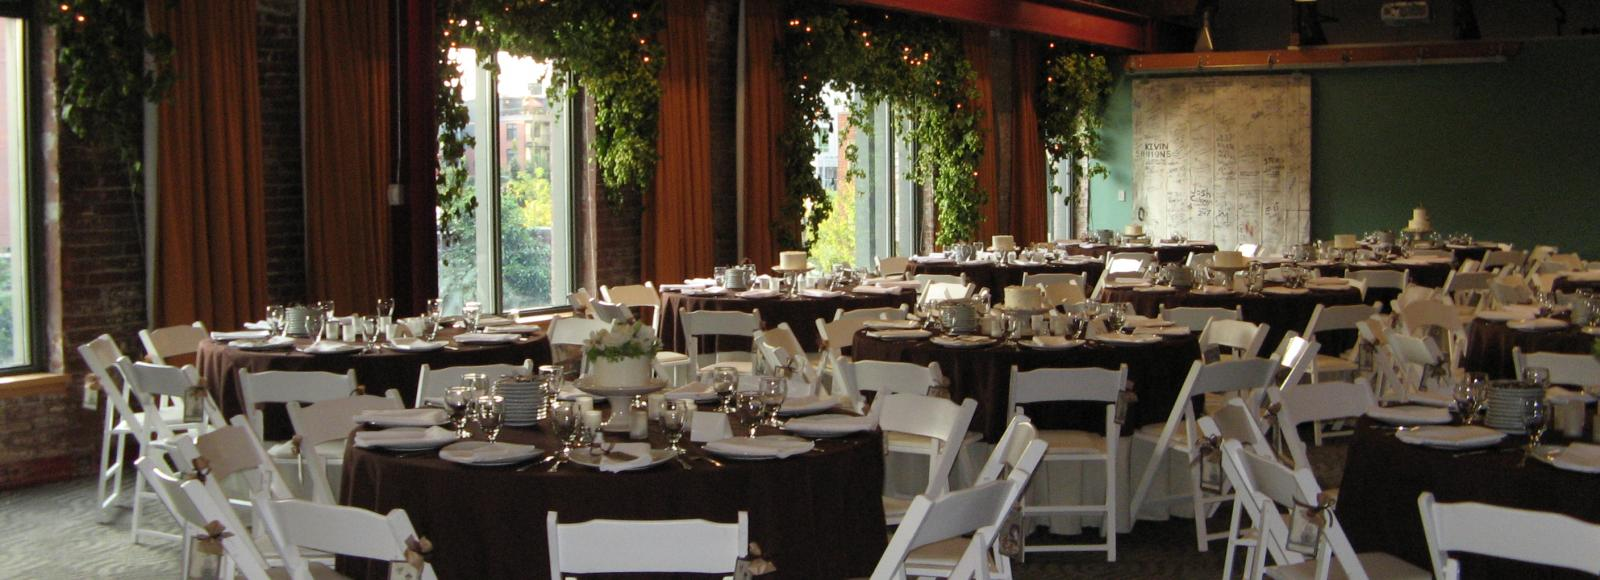 Room set up with 20 white tables and chairs, flowers